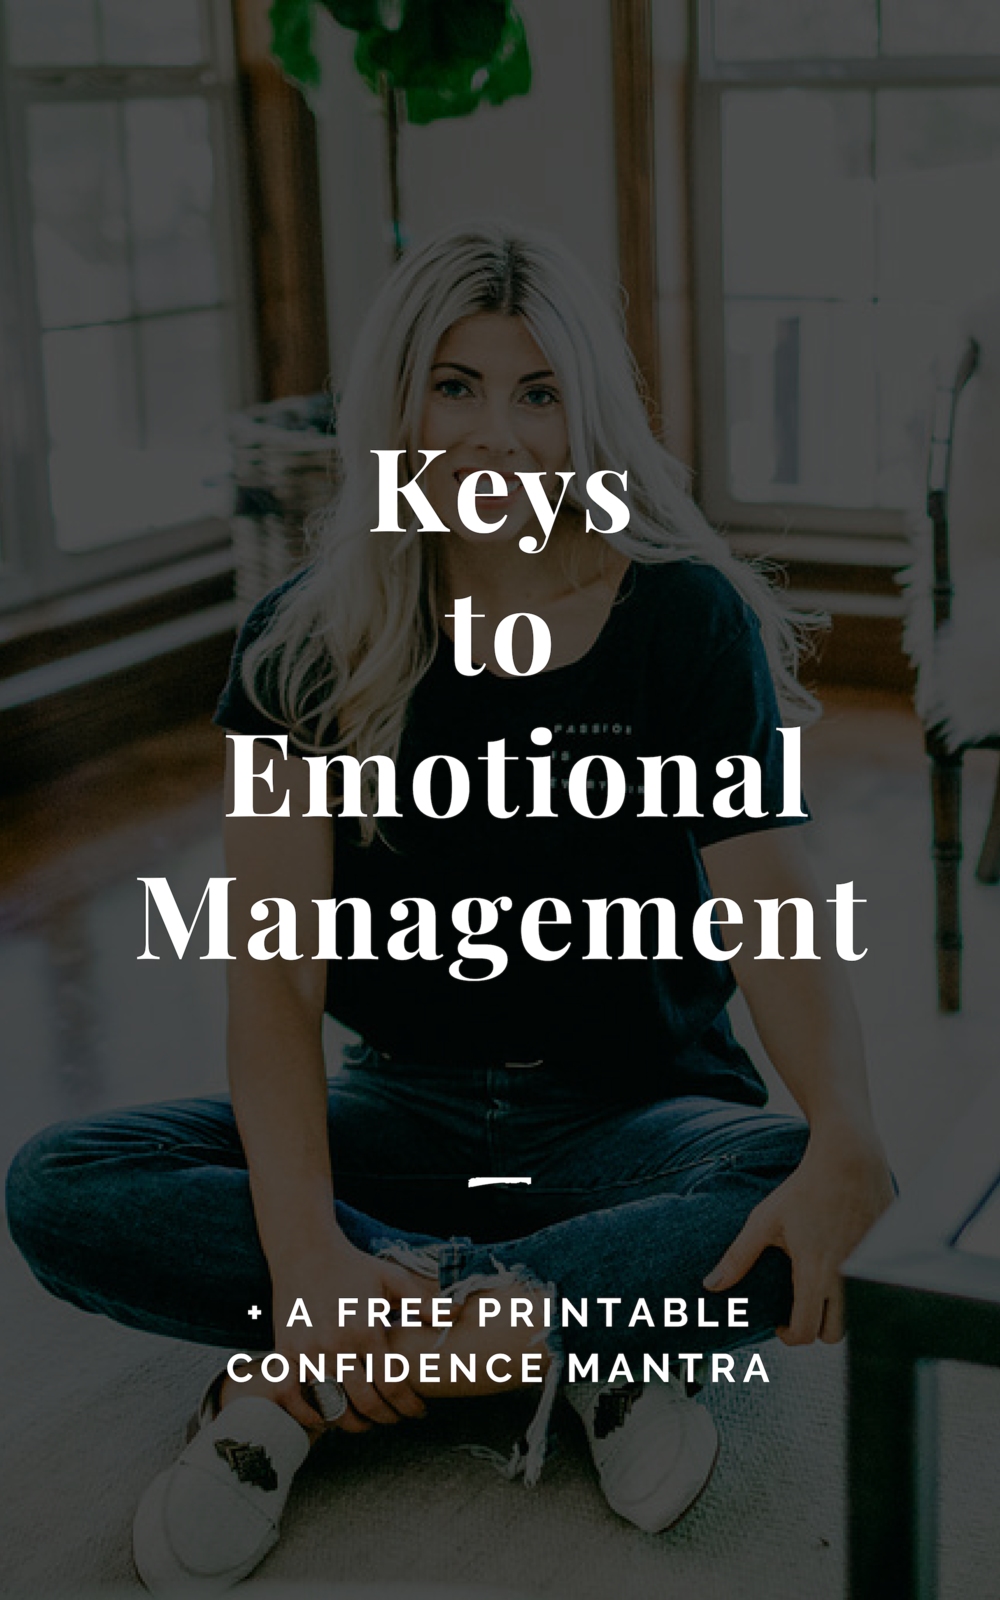 Keys to Emotional Management